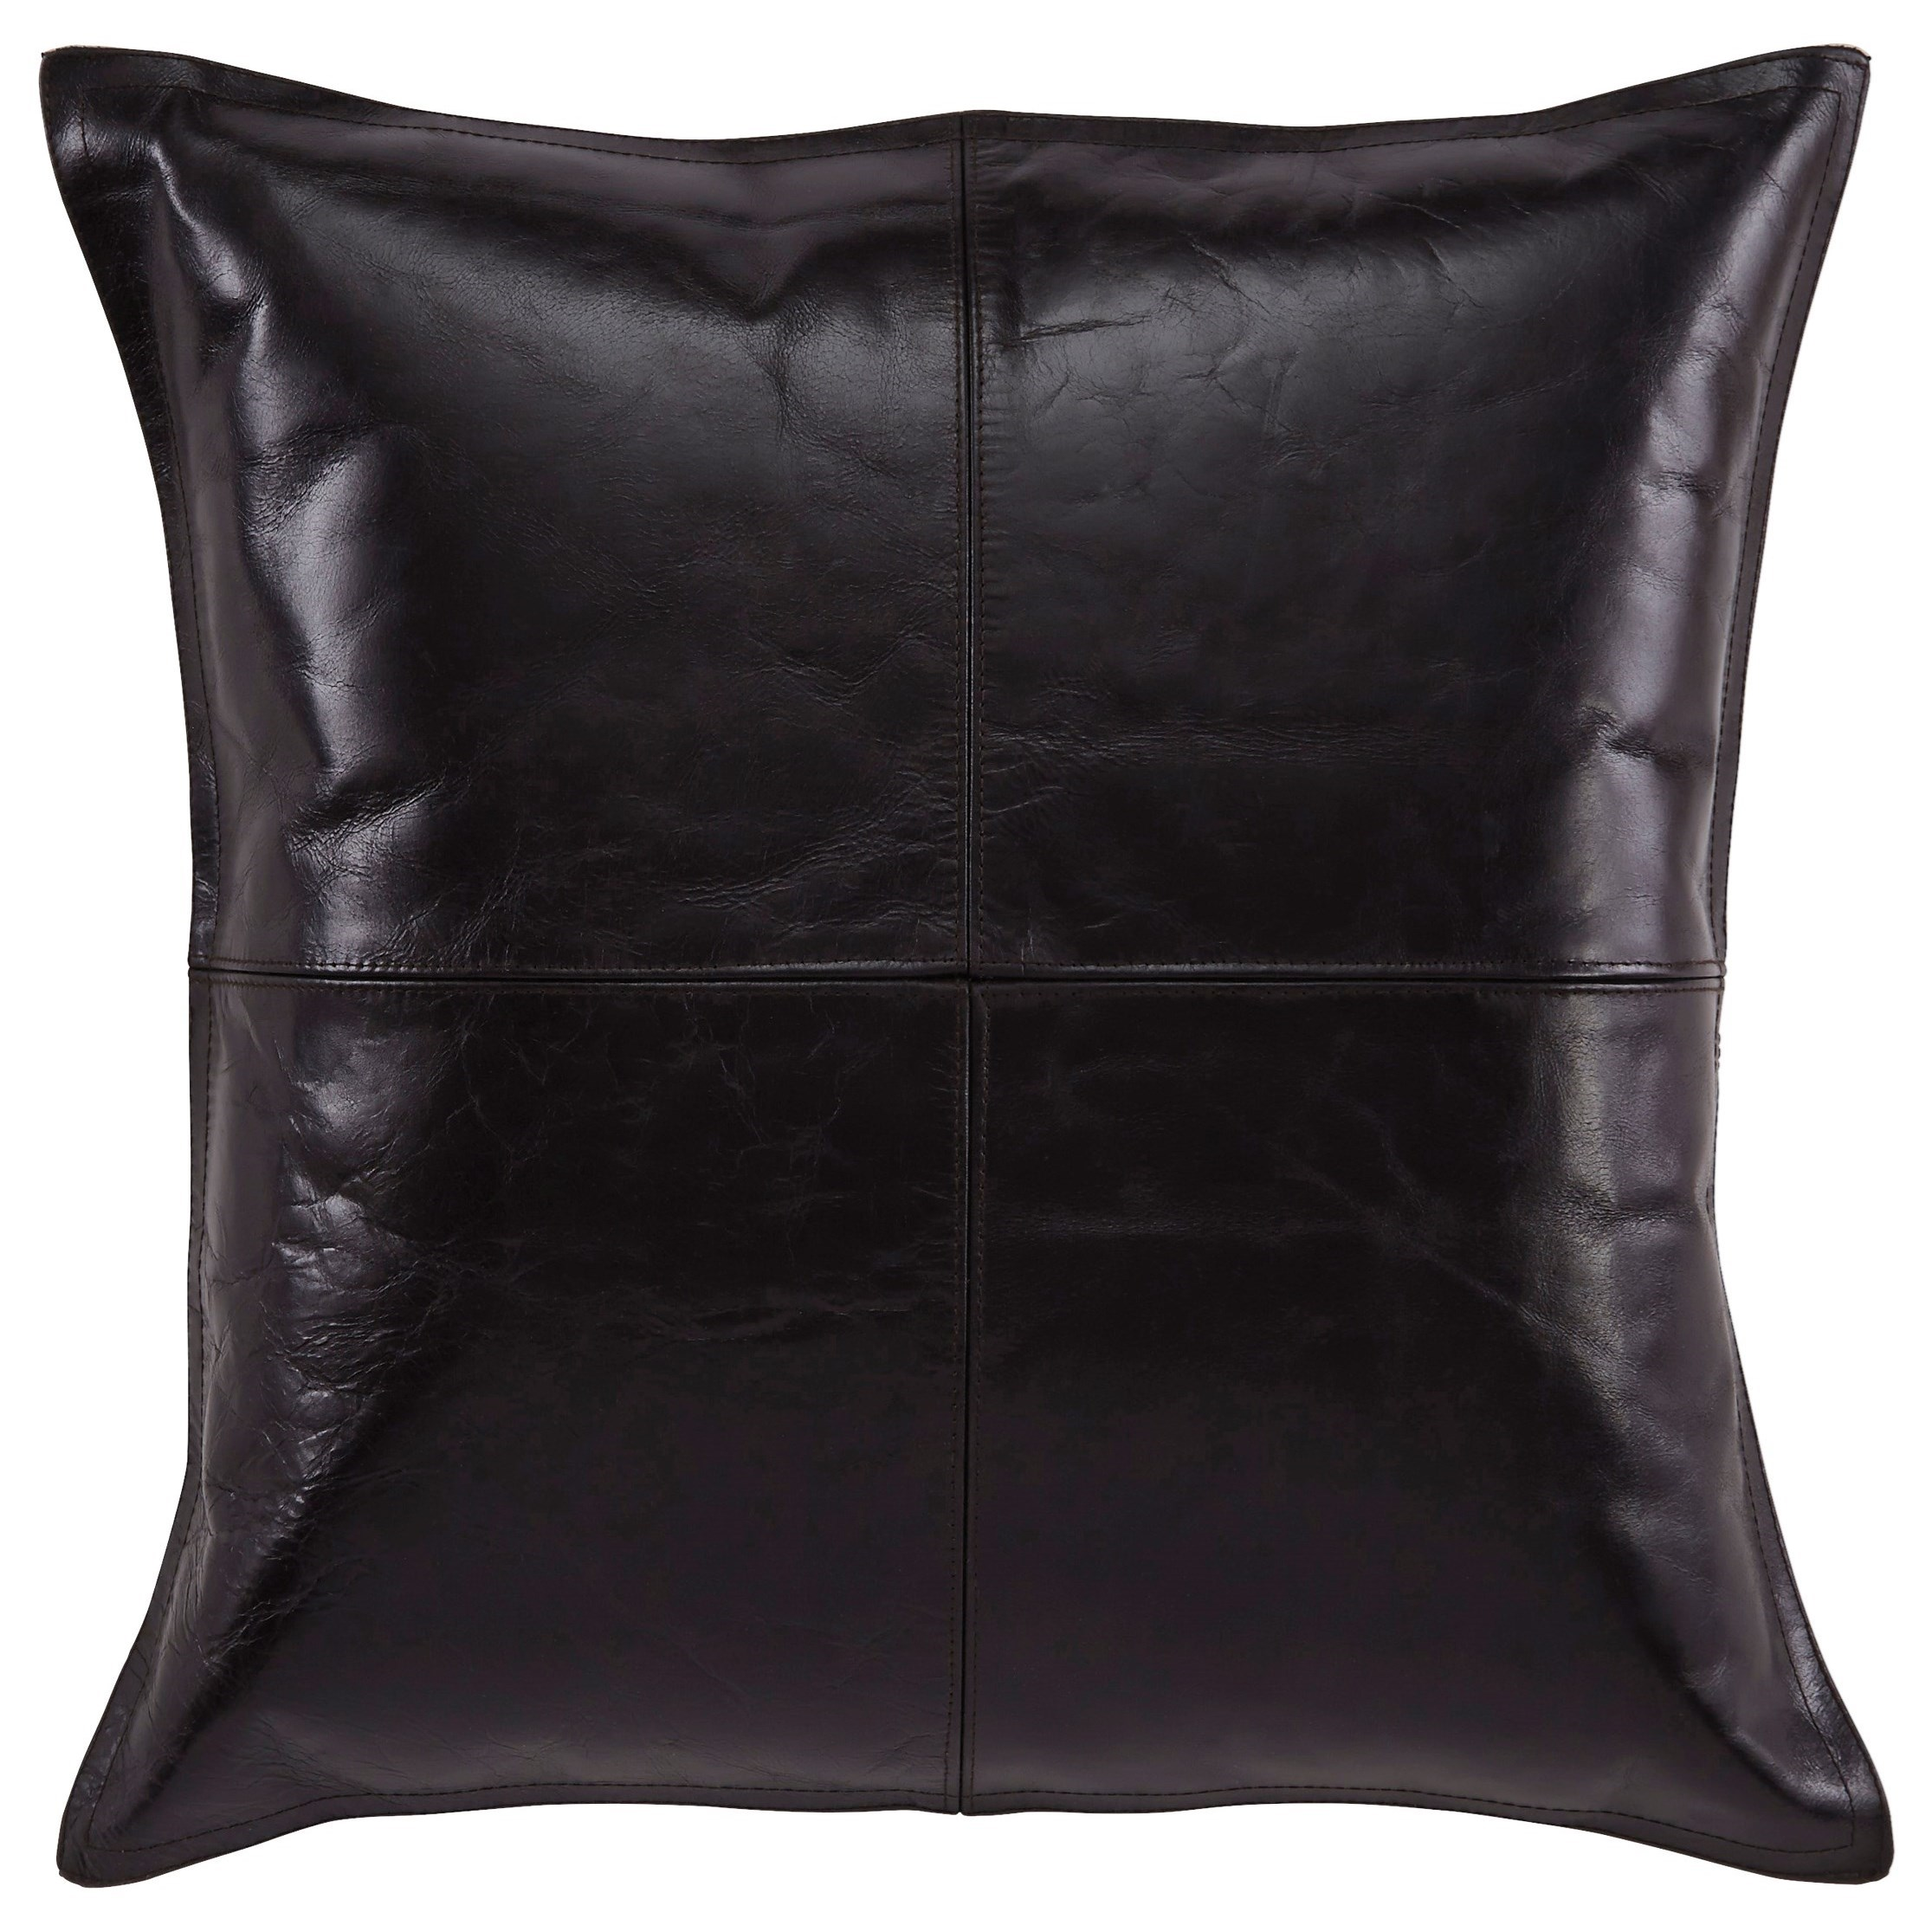 Signature Design by Ashley Pillows Brennen - Black Pillow Cover - Item Number: A1000638P